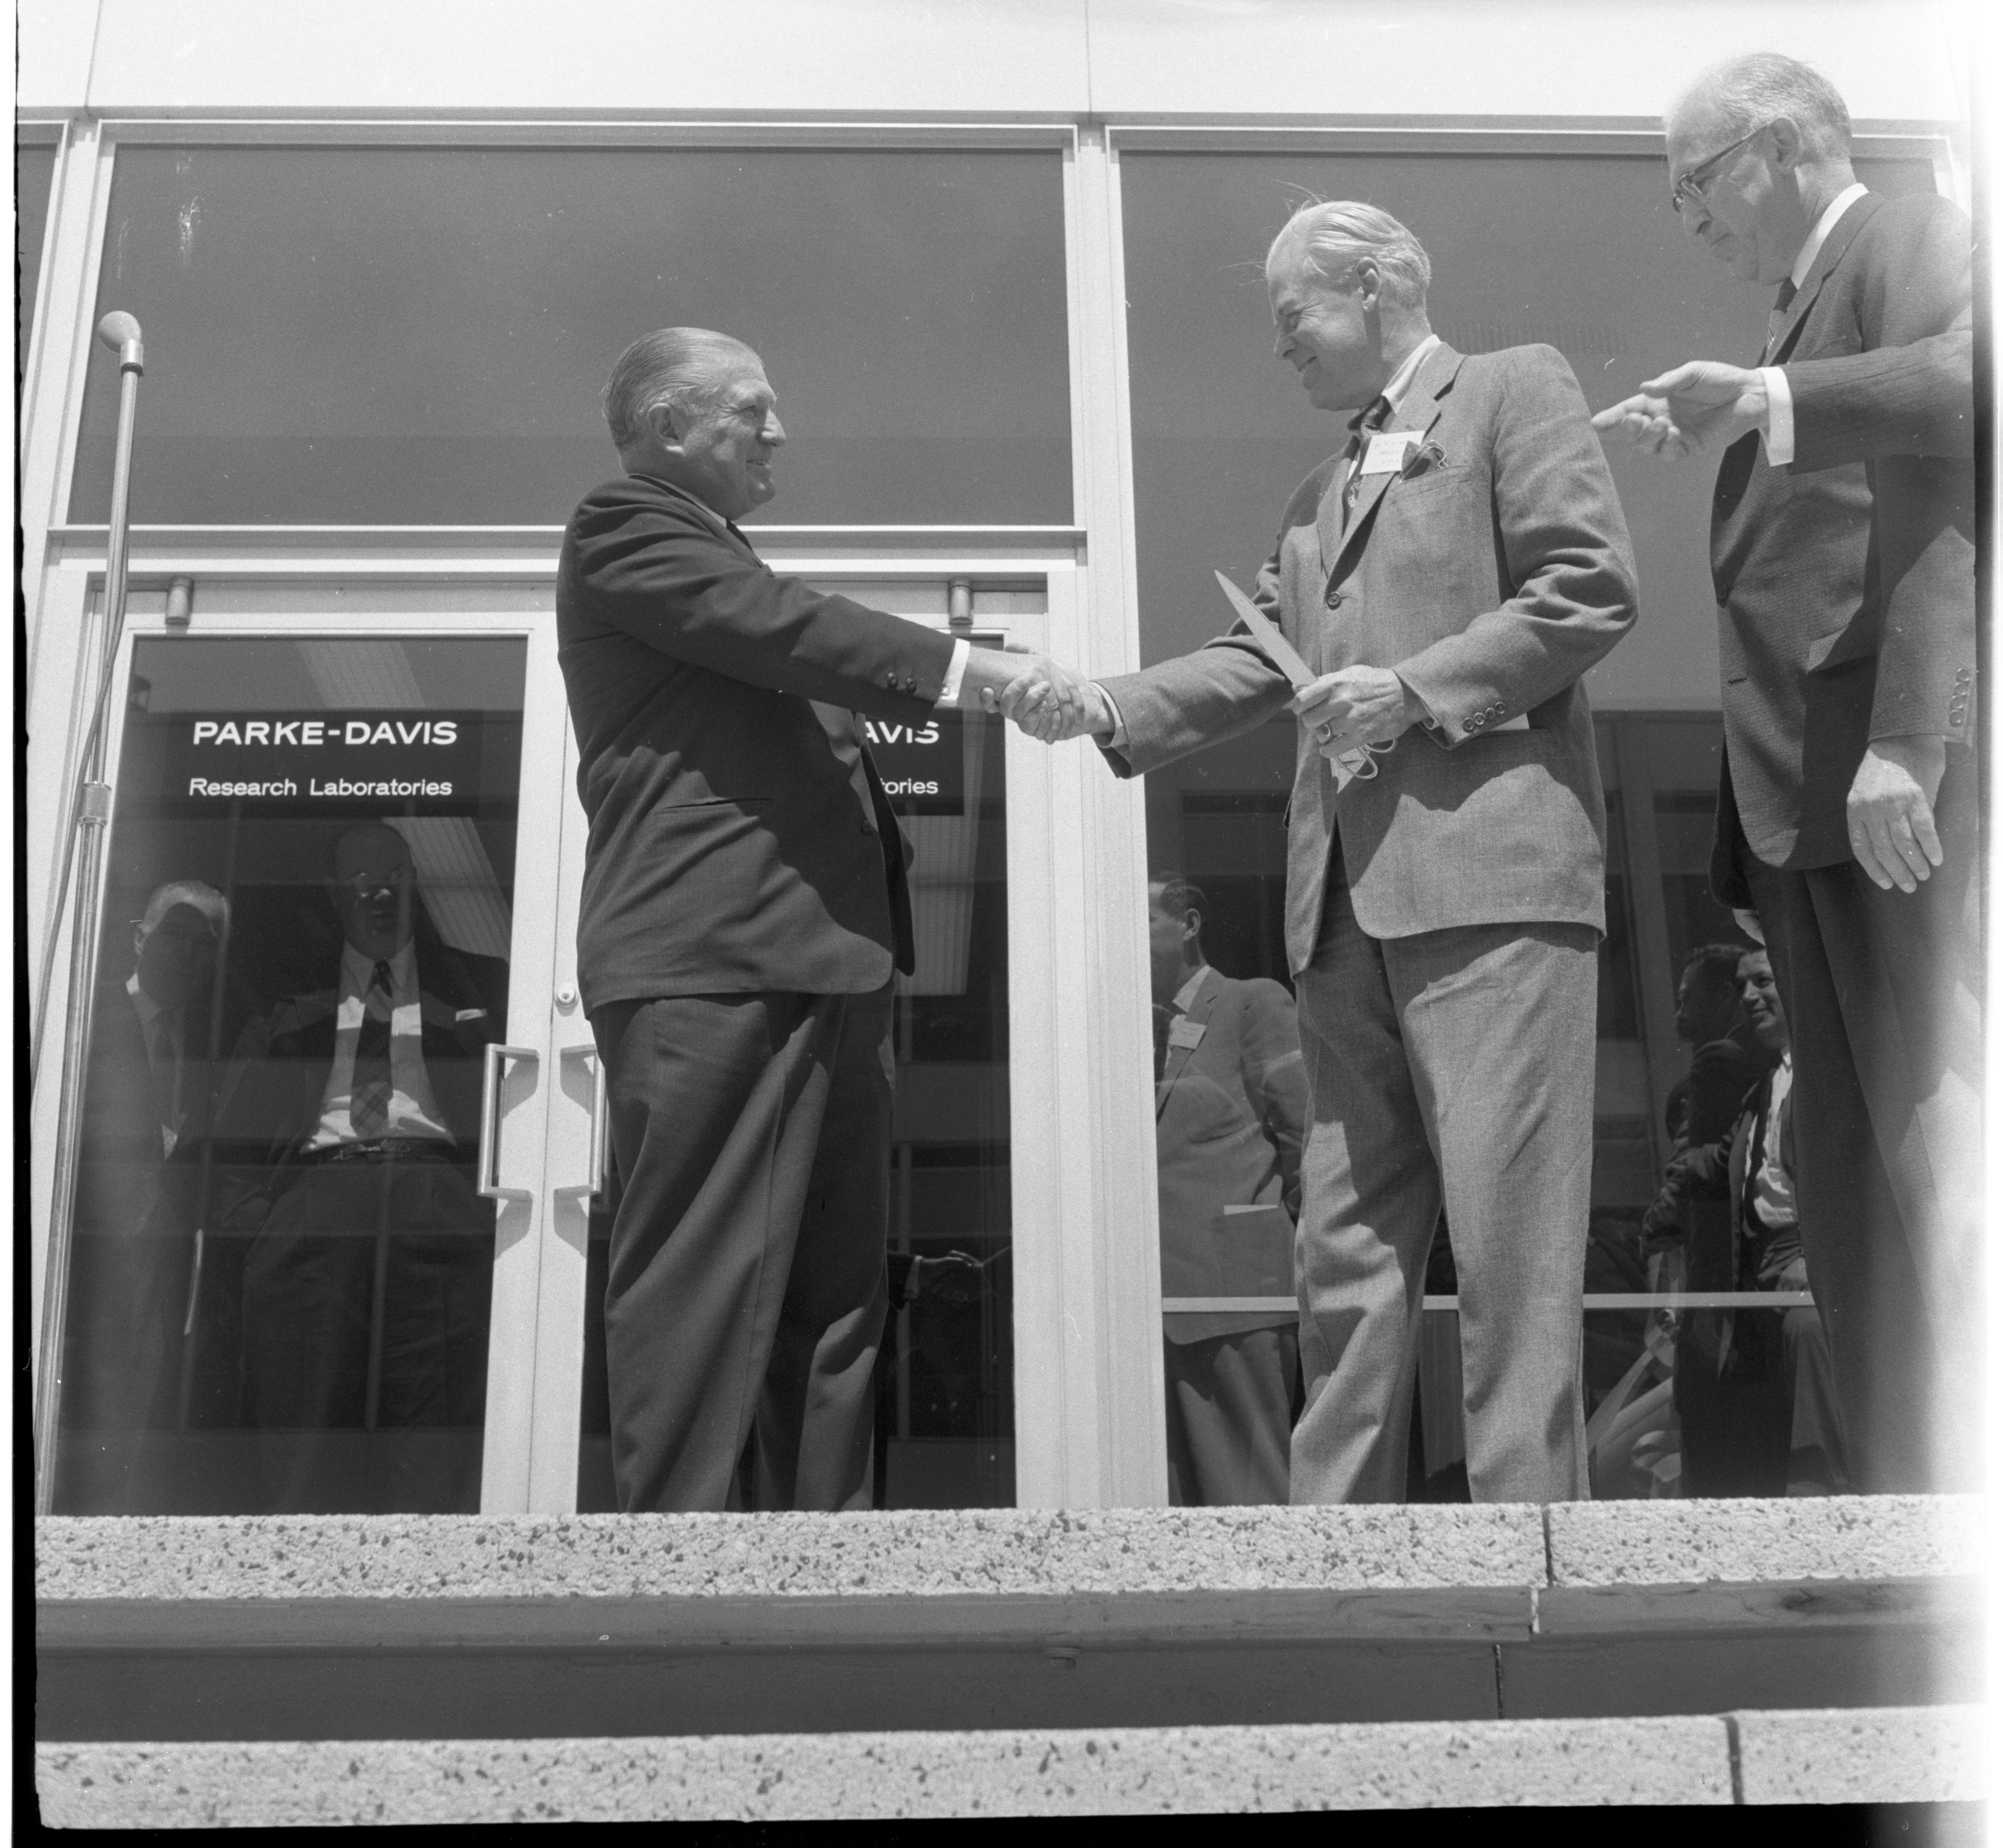 Harry Loynd Shakes Hands With Harlan Hatcher At The Formal Opening & Dedication Of The New Ann Arbor Parke Davis Research Laboratories, April 1960 image